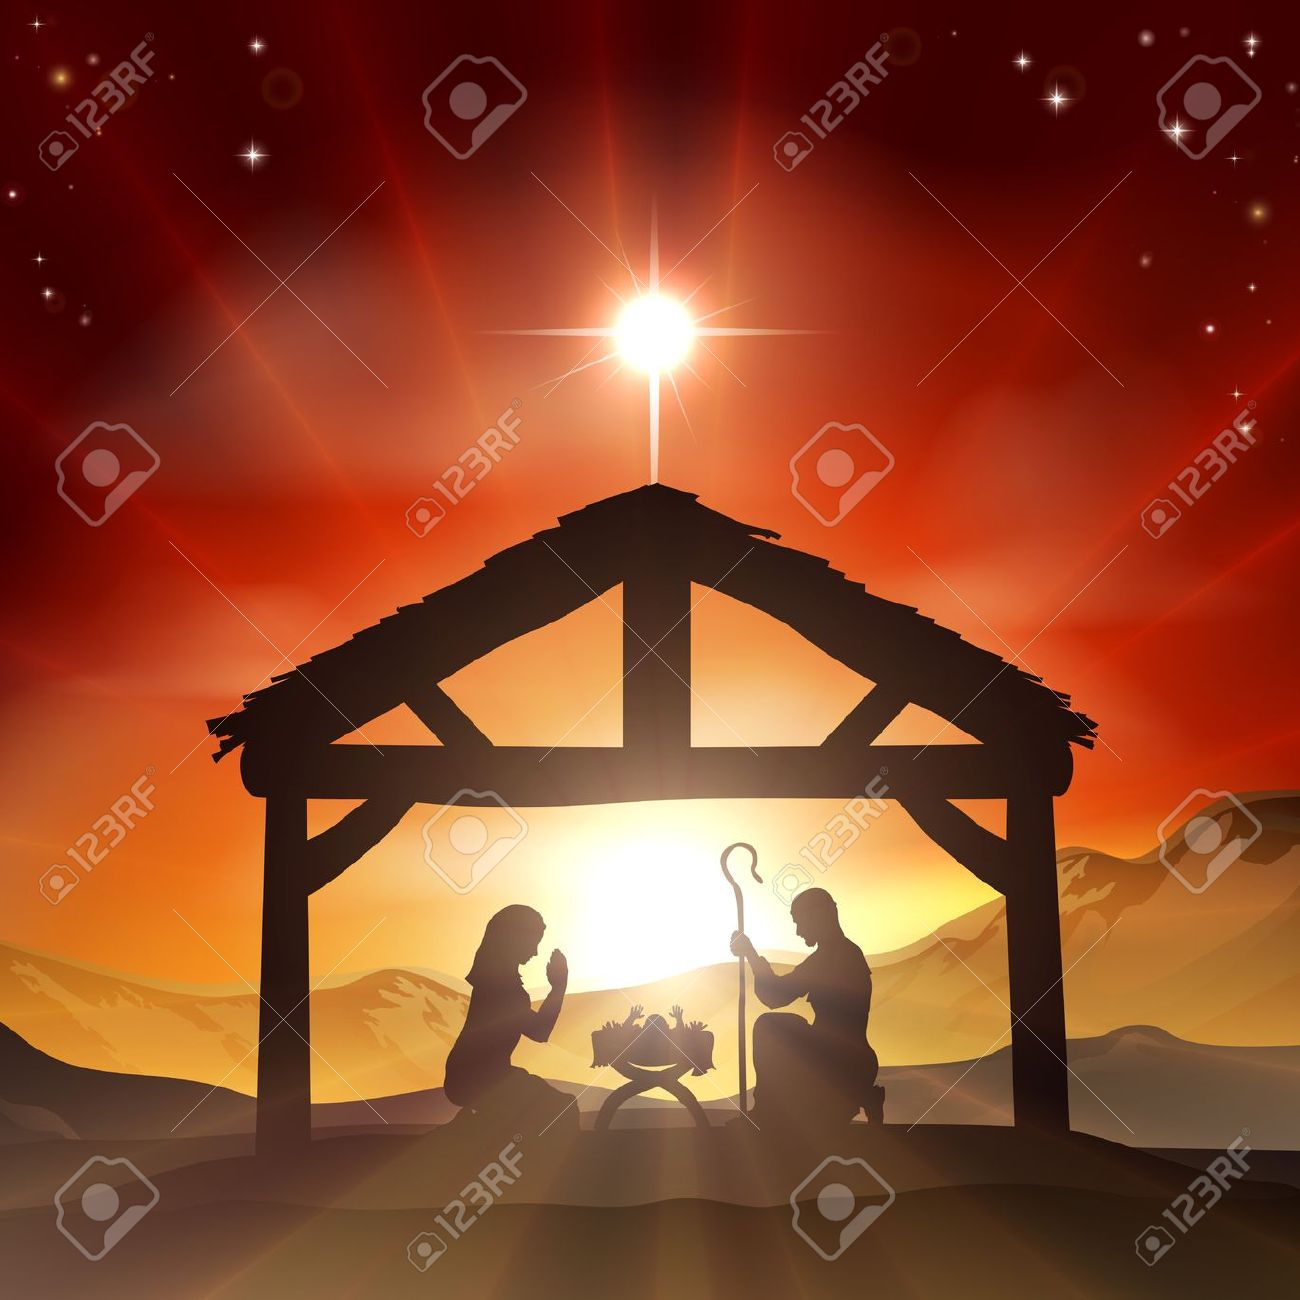 Red Christmas Nativity Clipart.